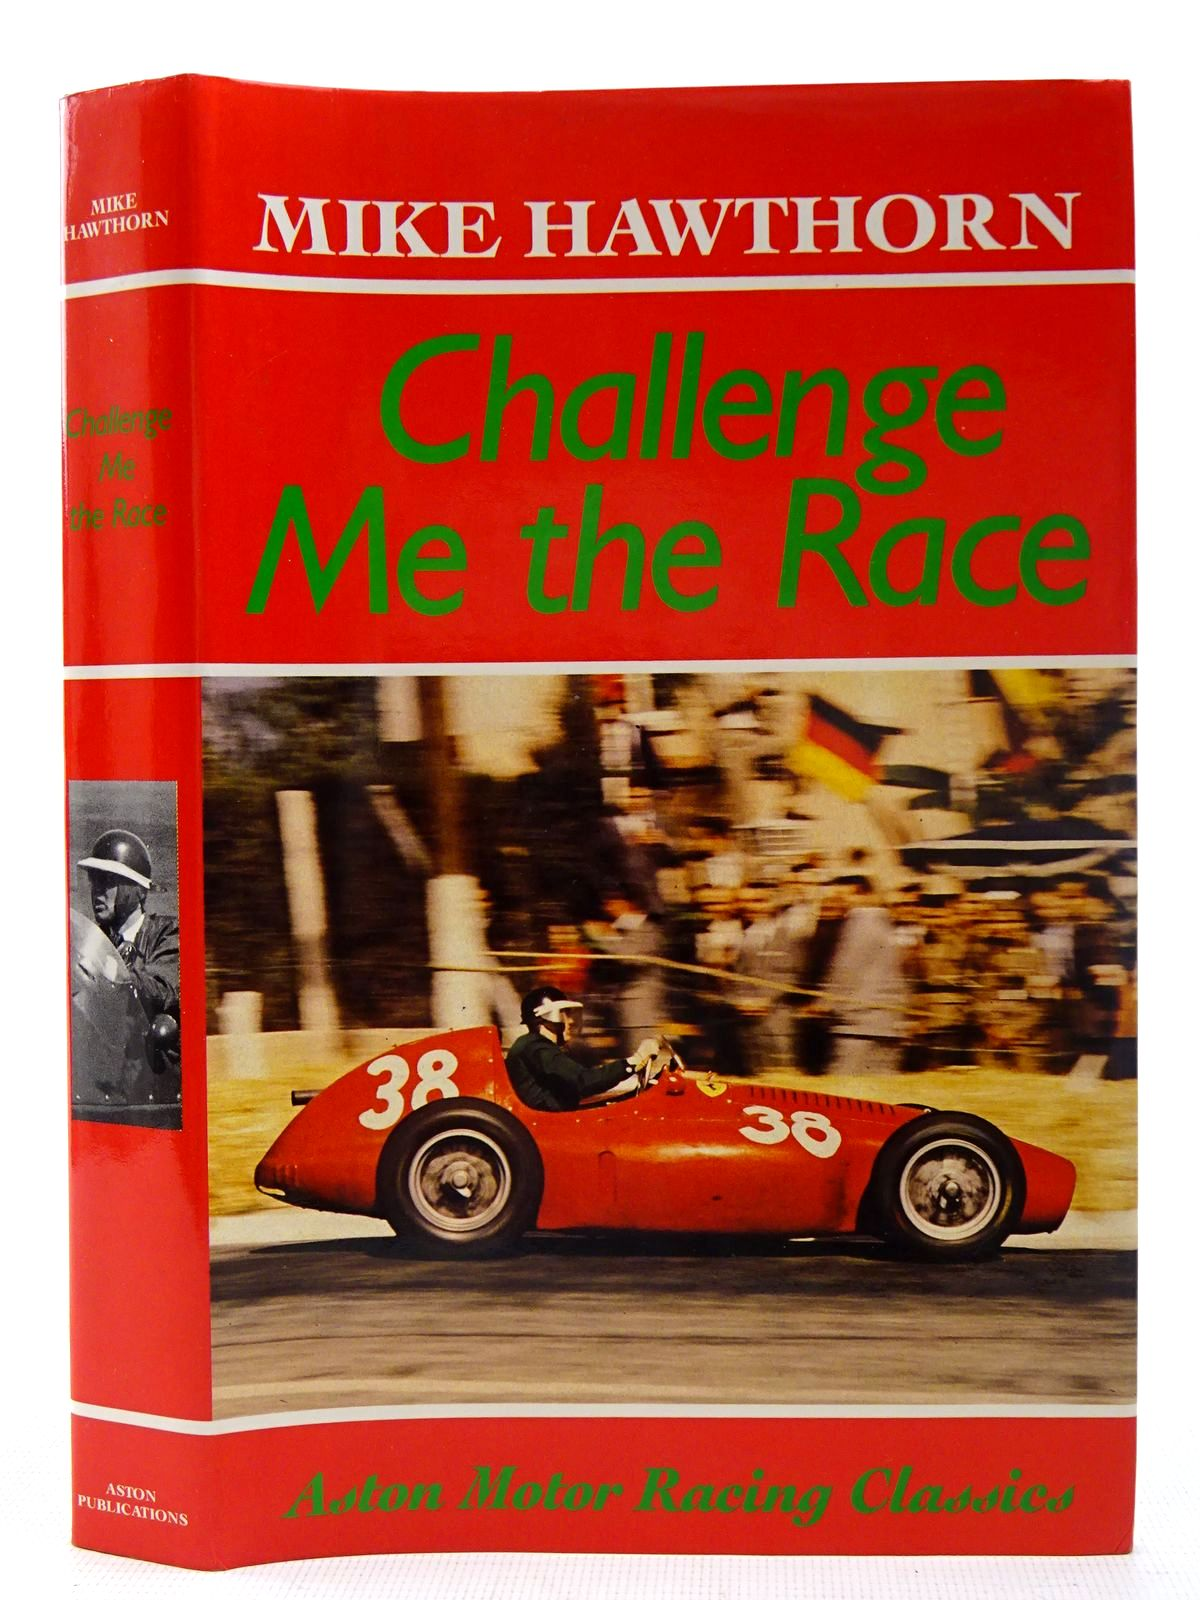 Photo of CHALLENGE ME THE RACE written by Hawthorn, Mike published by Aston Publications (STOCK CODE: 2126837)  for sale by Stella & Rose's Books